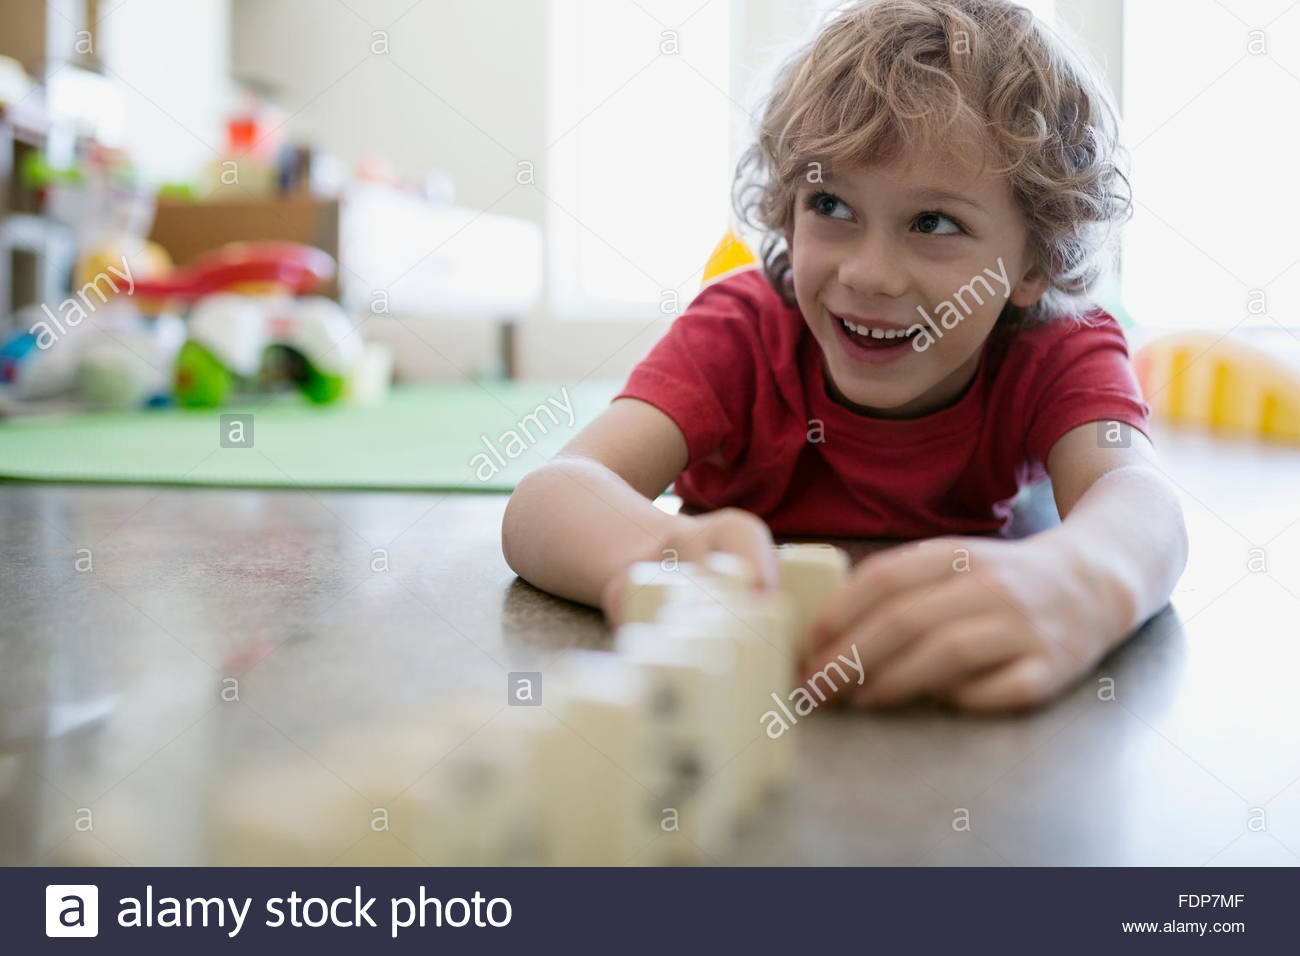 Smiling boy playing with dominoes on floor - Stock Image